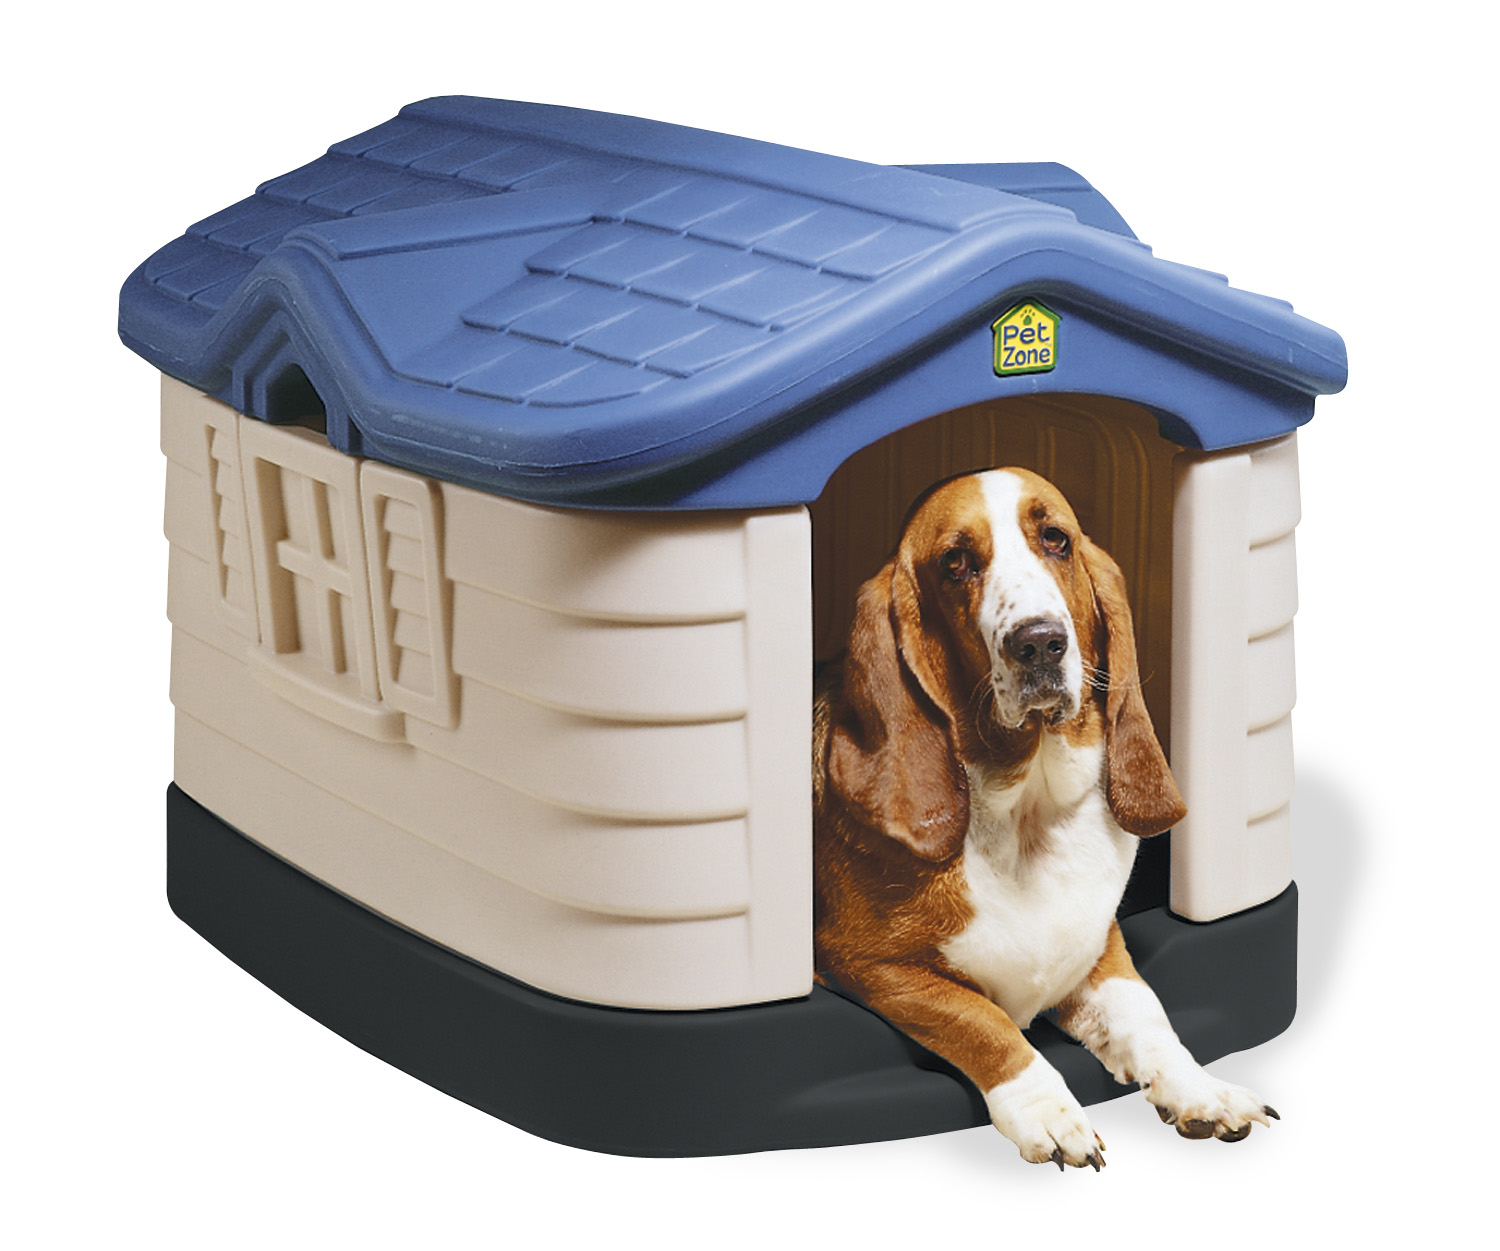 Large insulated heated air conditioned dog houses free ship for Insulated heated dog house